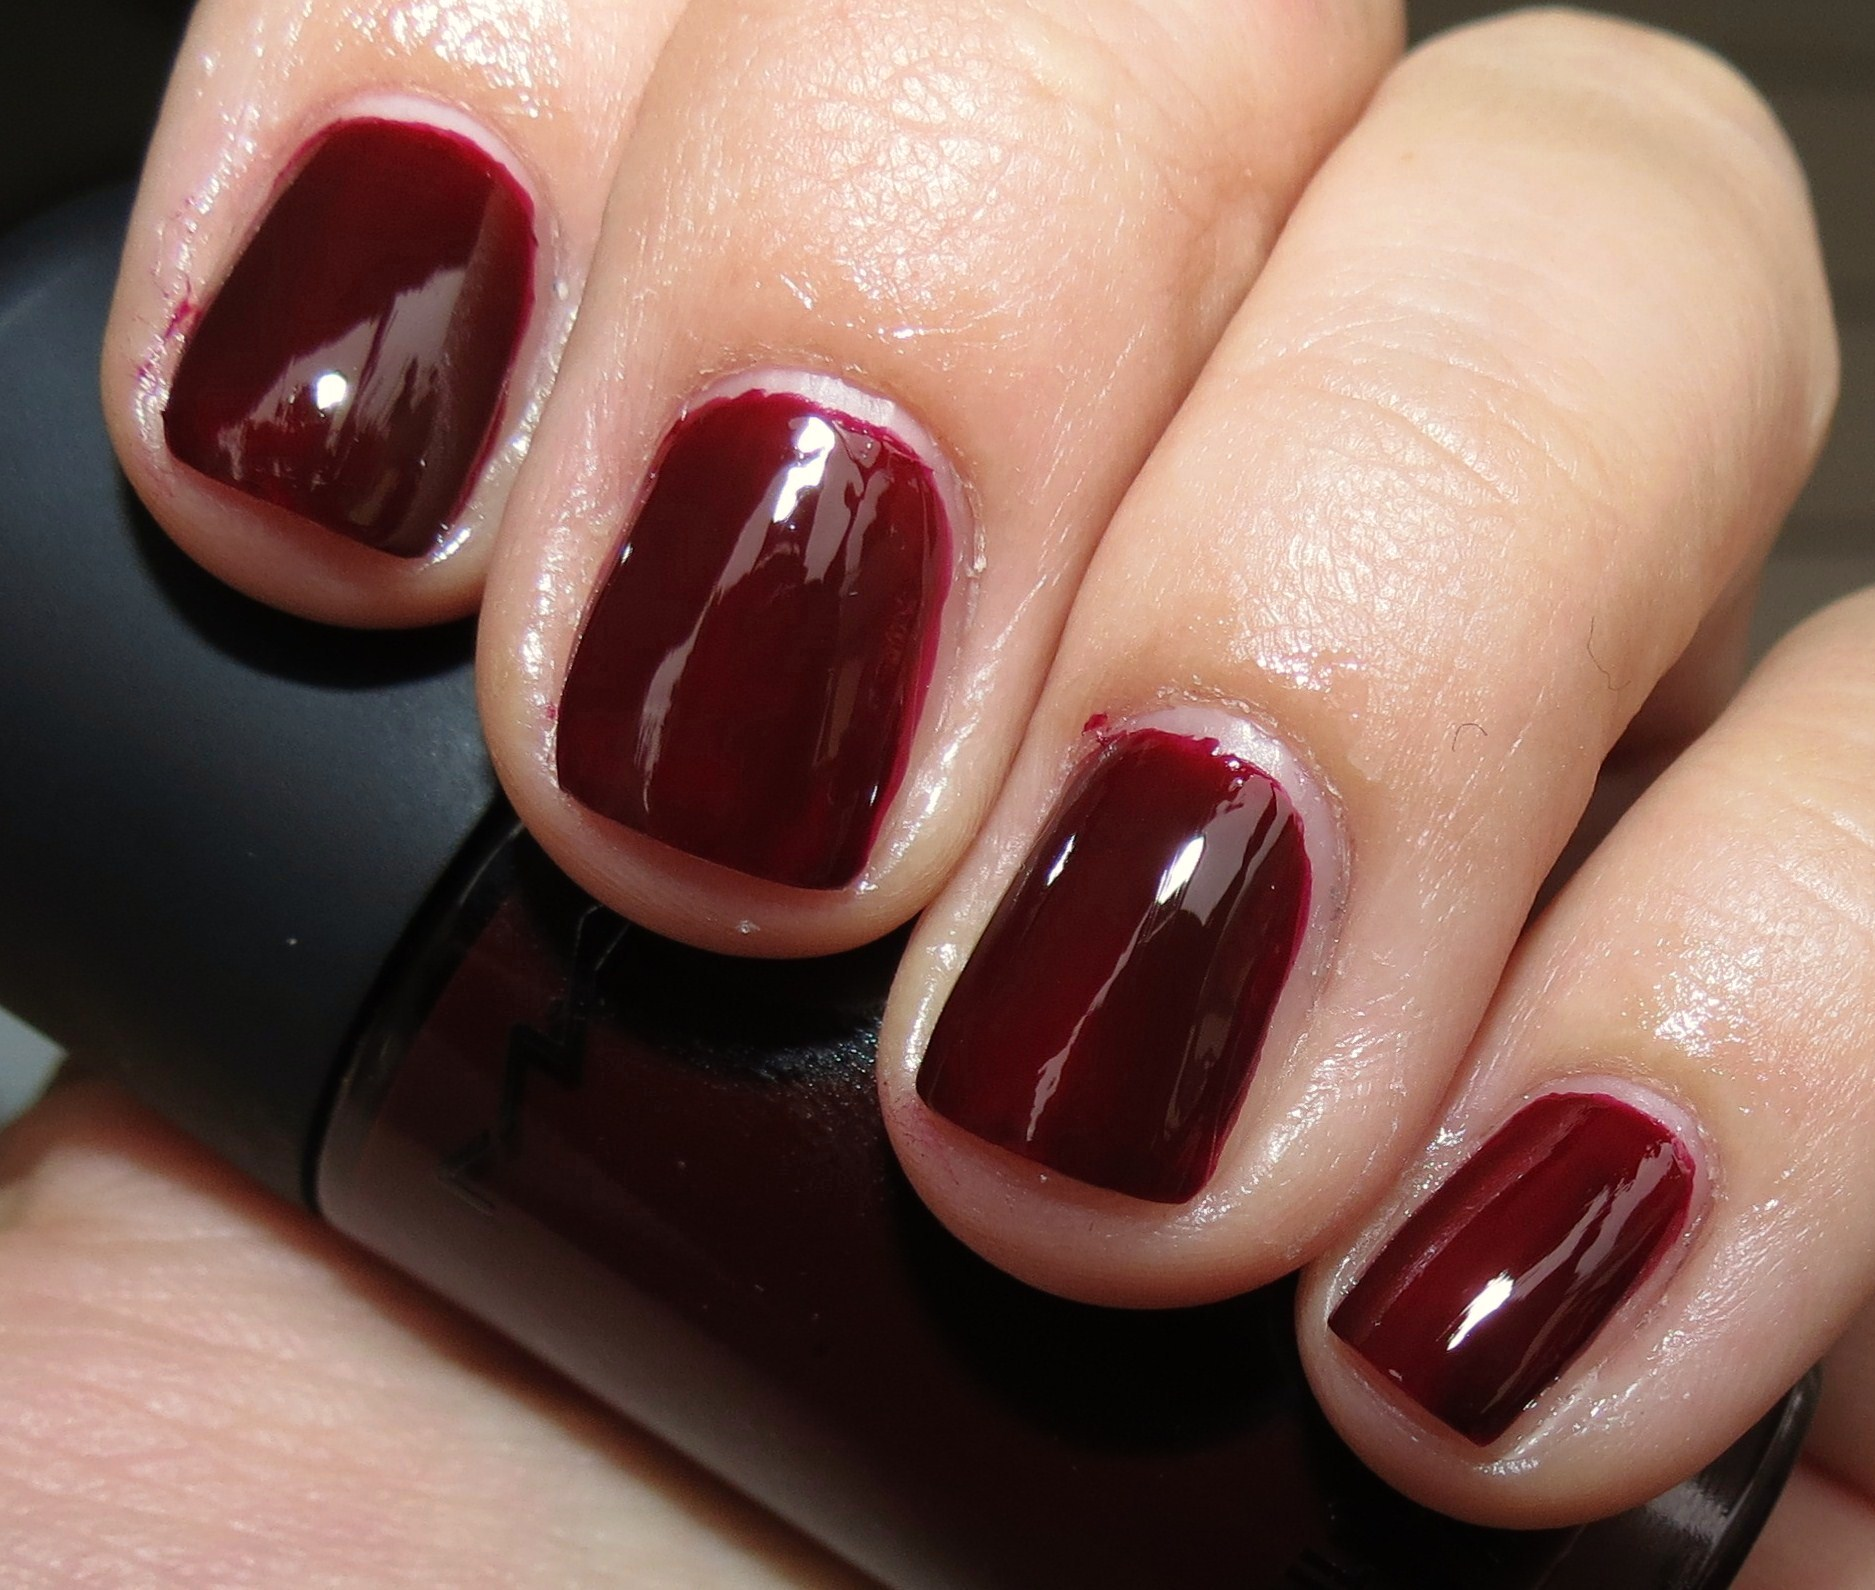 Deep Wine Nail Polish: MAC Vintage Vamp Nail Polish Swatches & Review